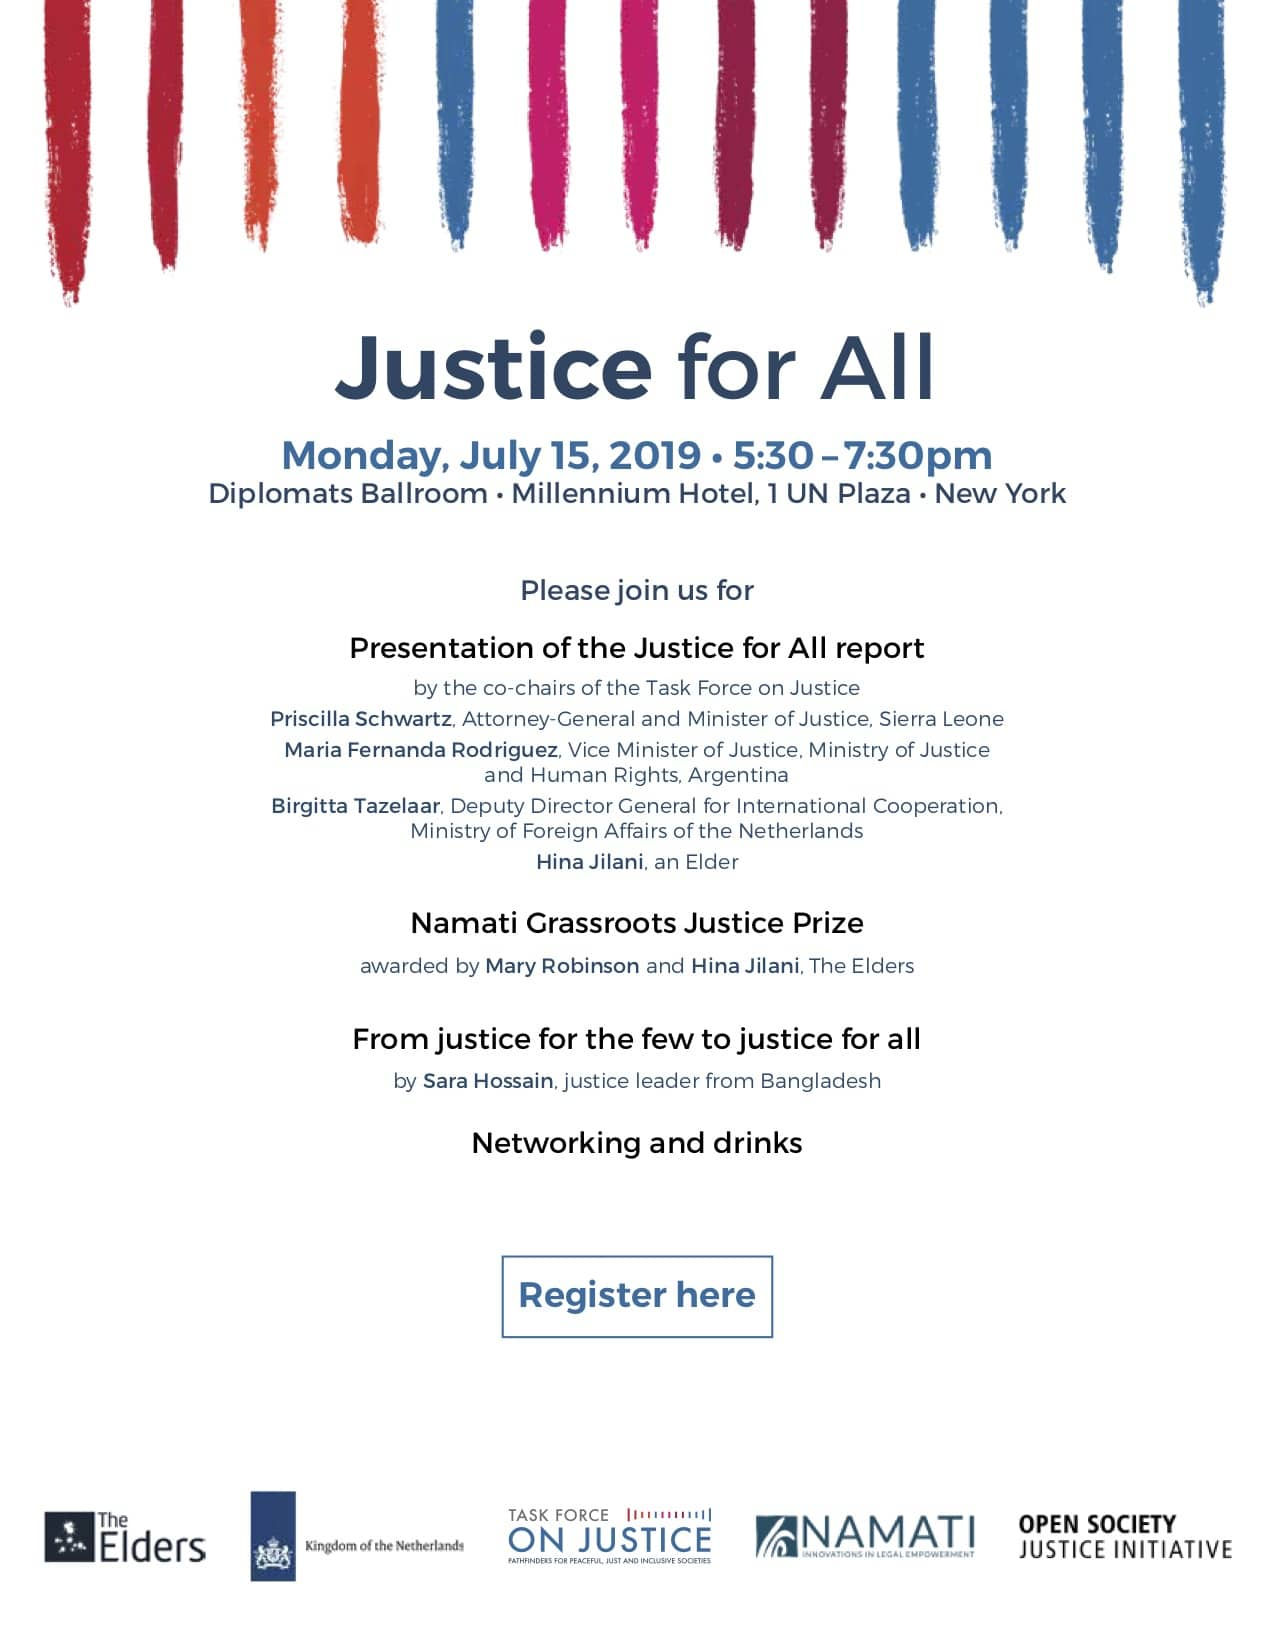 Justice For All featuring the Grassroots Justice Prize Ceremony